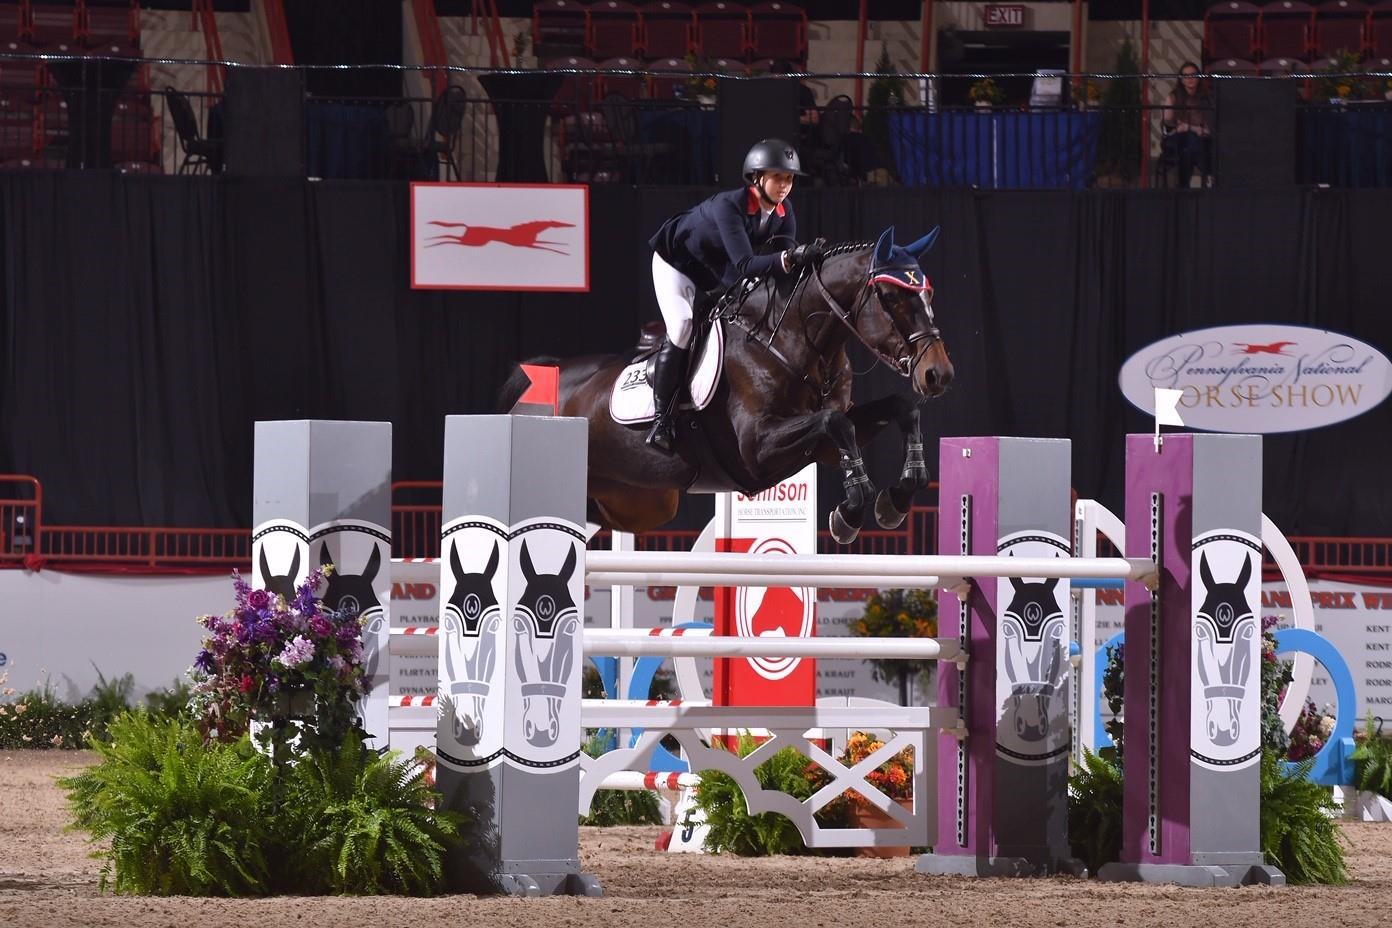 Emma Catherine Reichow Wins Gold in the 2019 Neue Schule/USEF Junior Jumper Individual Championships at the 74th Pennsylvania National Horse Show